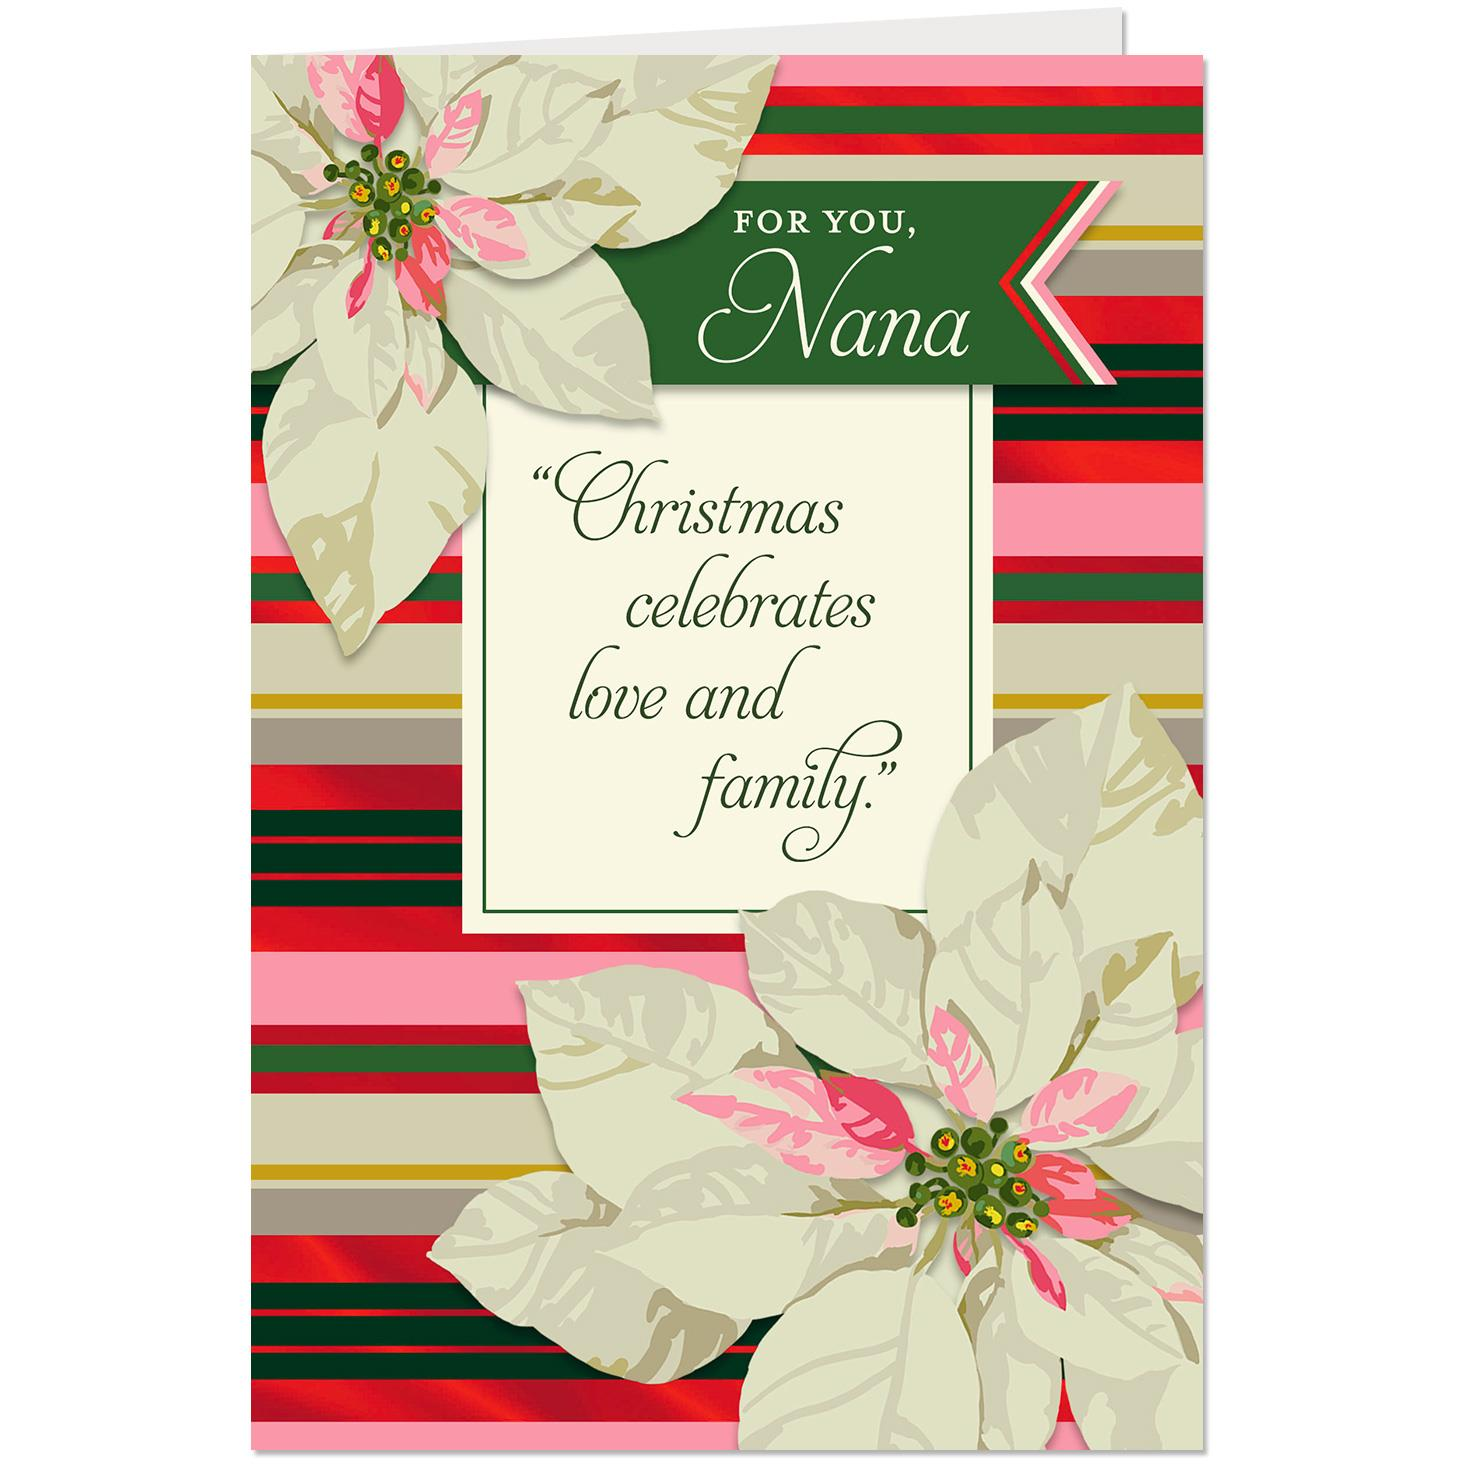 Blessed to have you christmas card for nana greeting cards hallmark blessed to have you christmas card for nana m4hsunfo